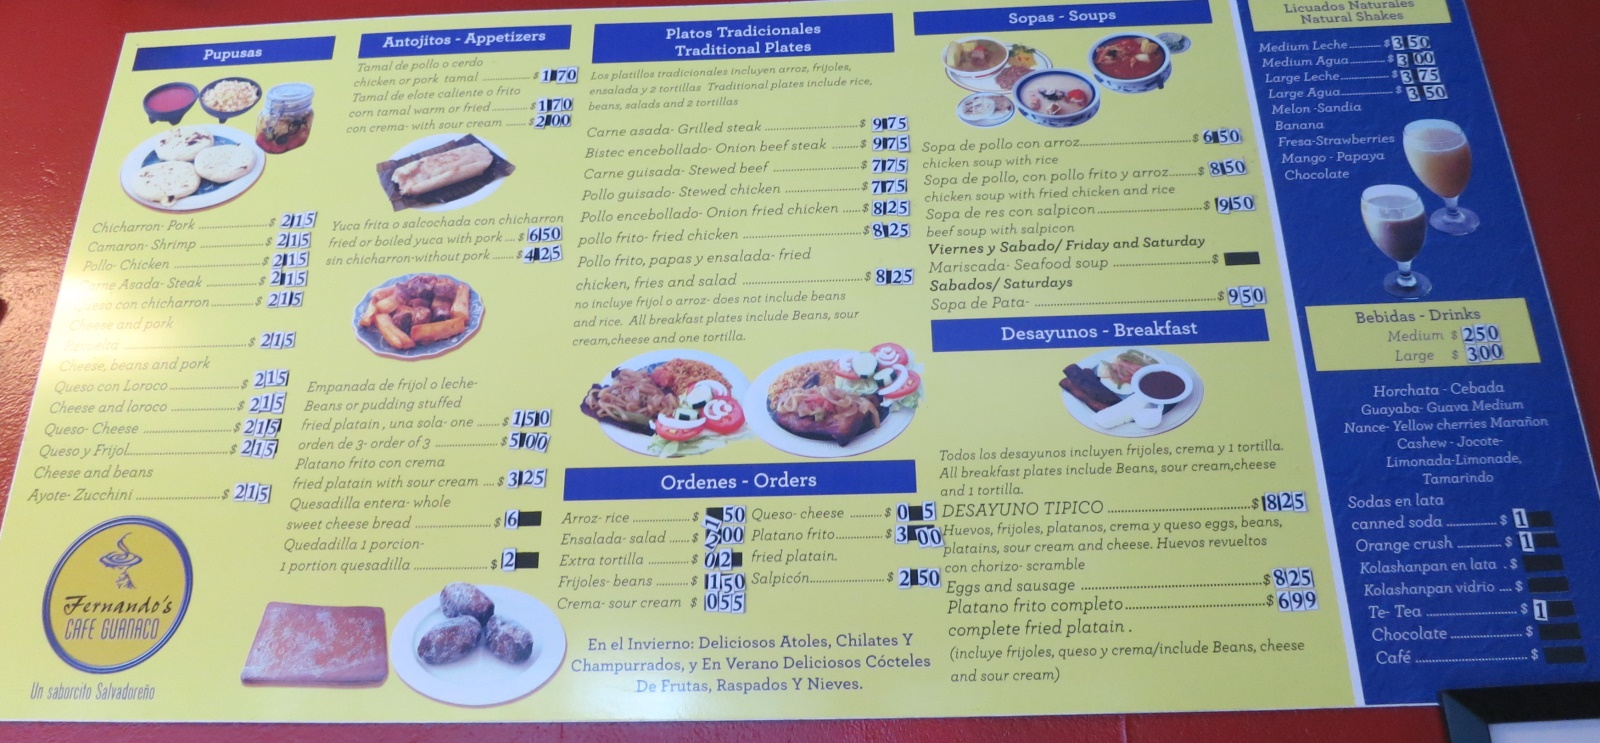 cafe guanaco menu